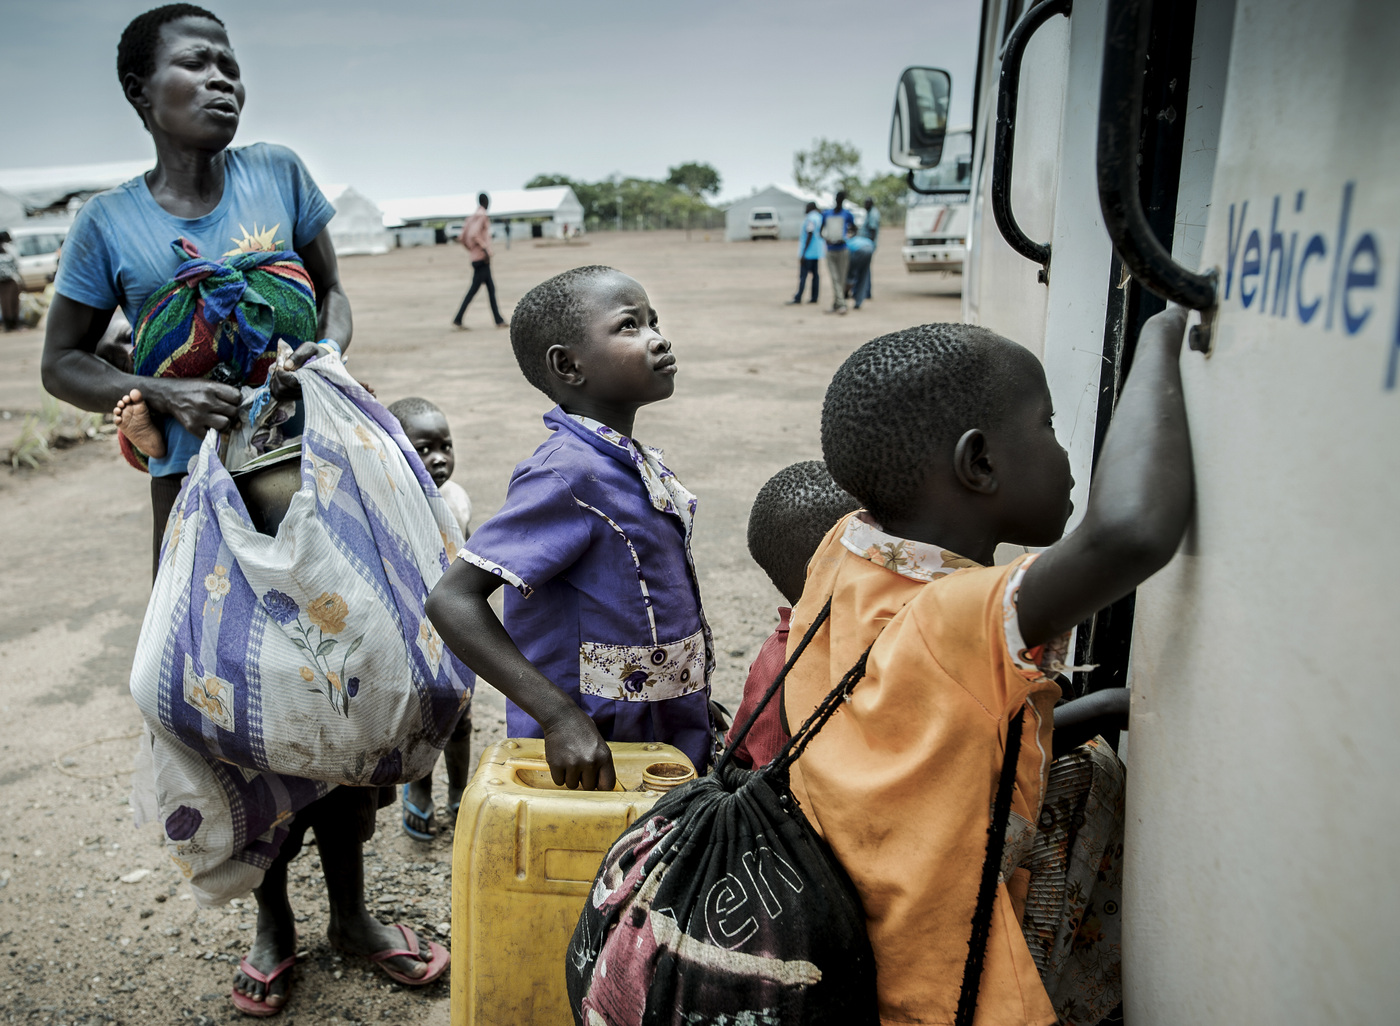 John T. Pedersen Photography - A mother with her children on their way with their belongings onto the bus that will take them further into BidiBidi. Many of the refugees only have what they are wearing.